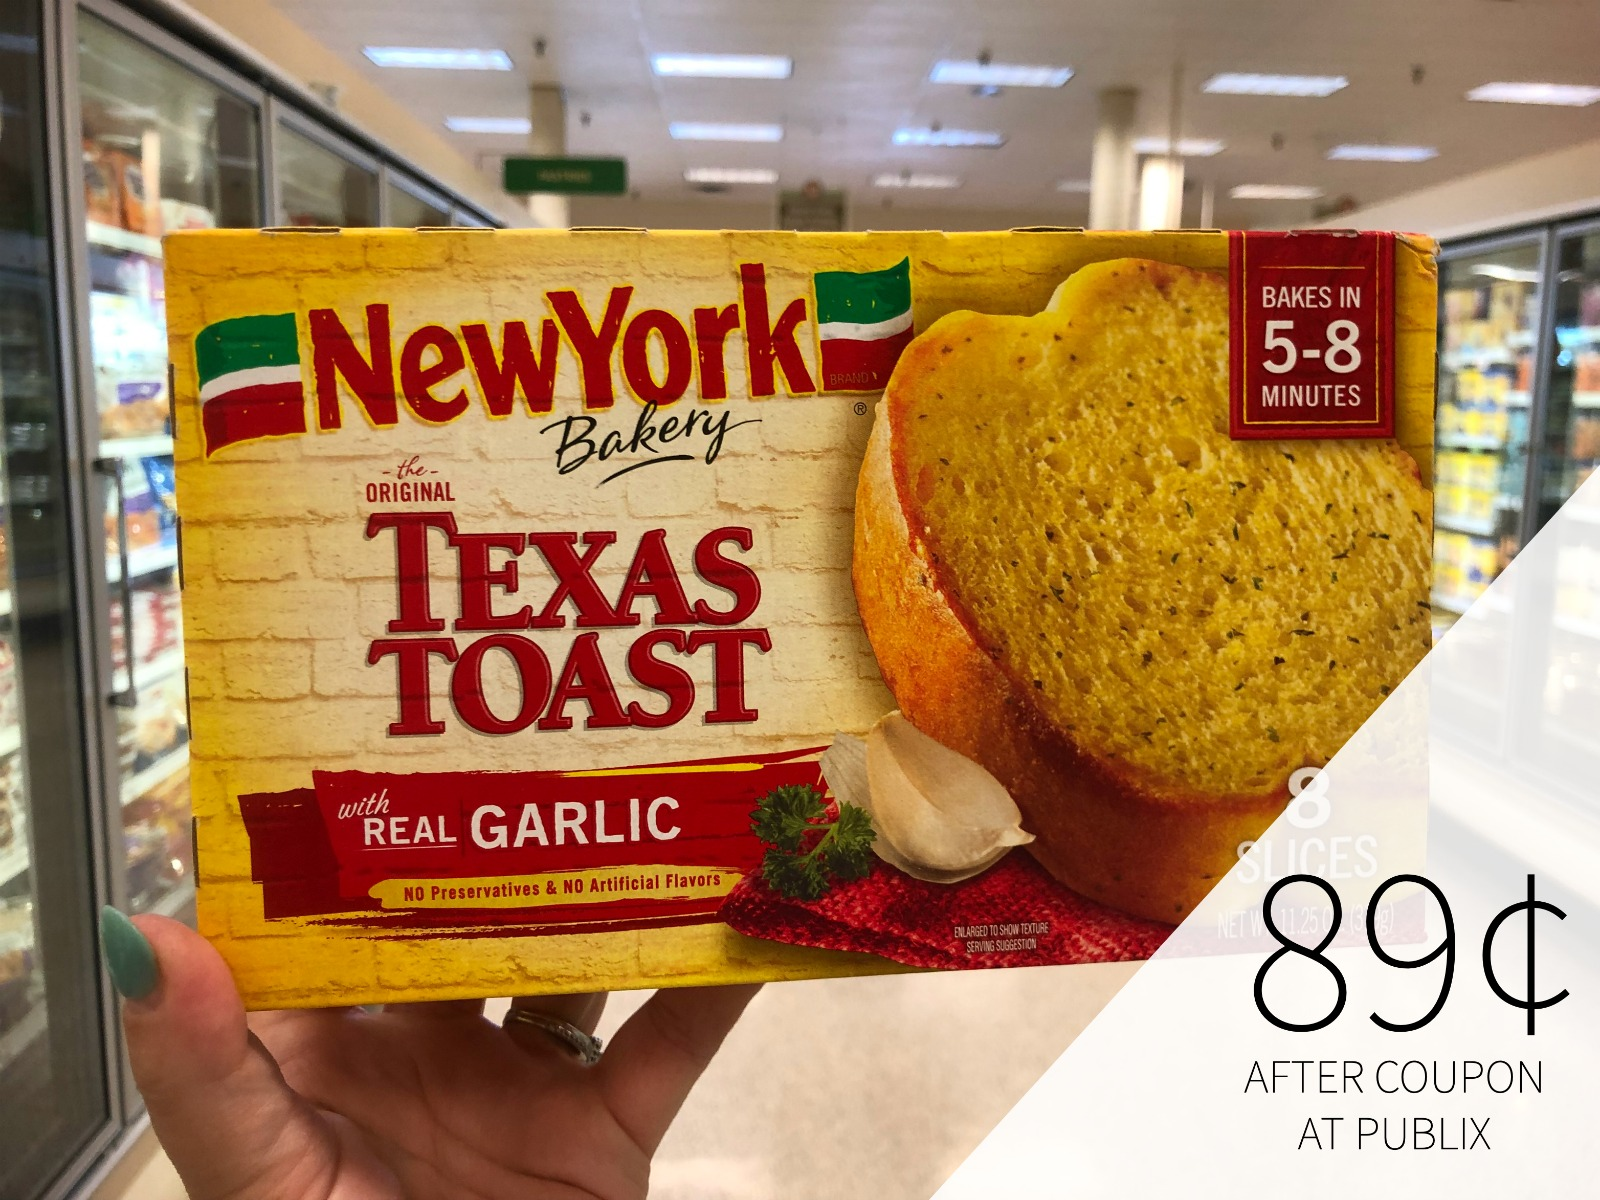 New York Frozen Breads As Low As 89¢ At Publix on I Heart Publix